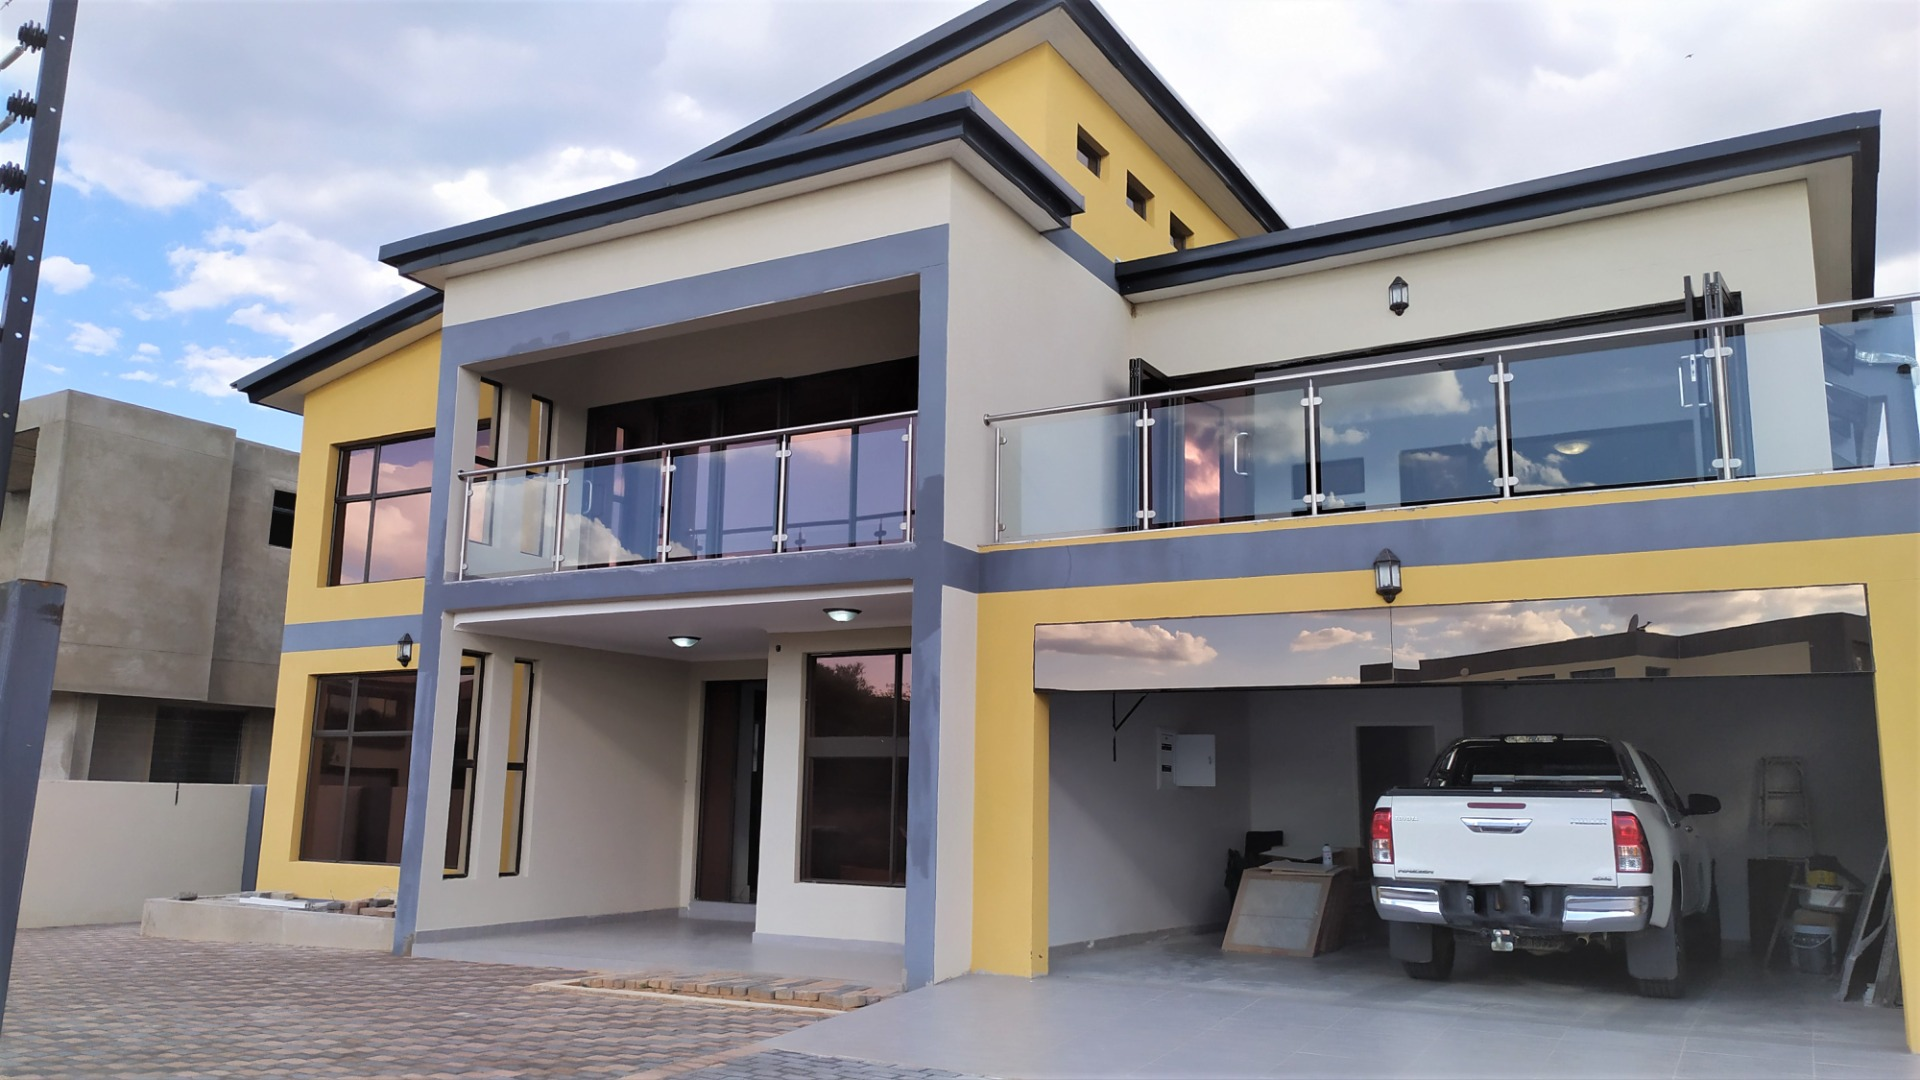 5 Bedroom House To Rent In Sebele Valley Re Max Of Southern Africa